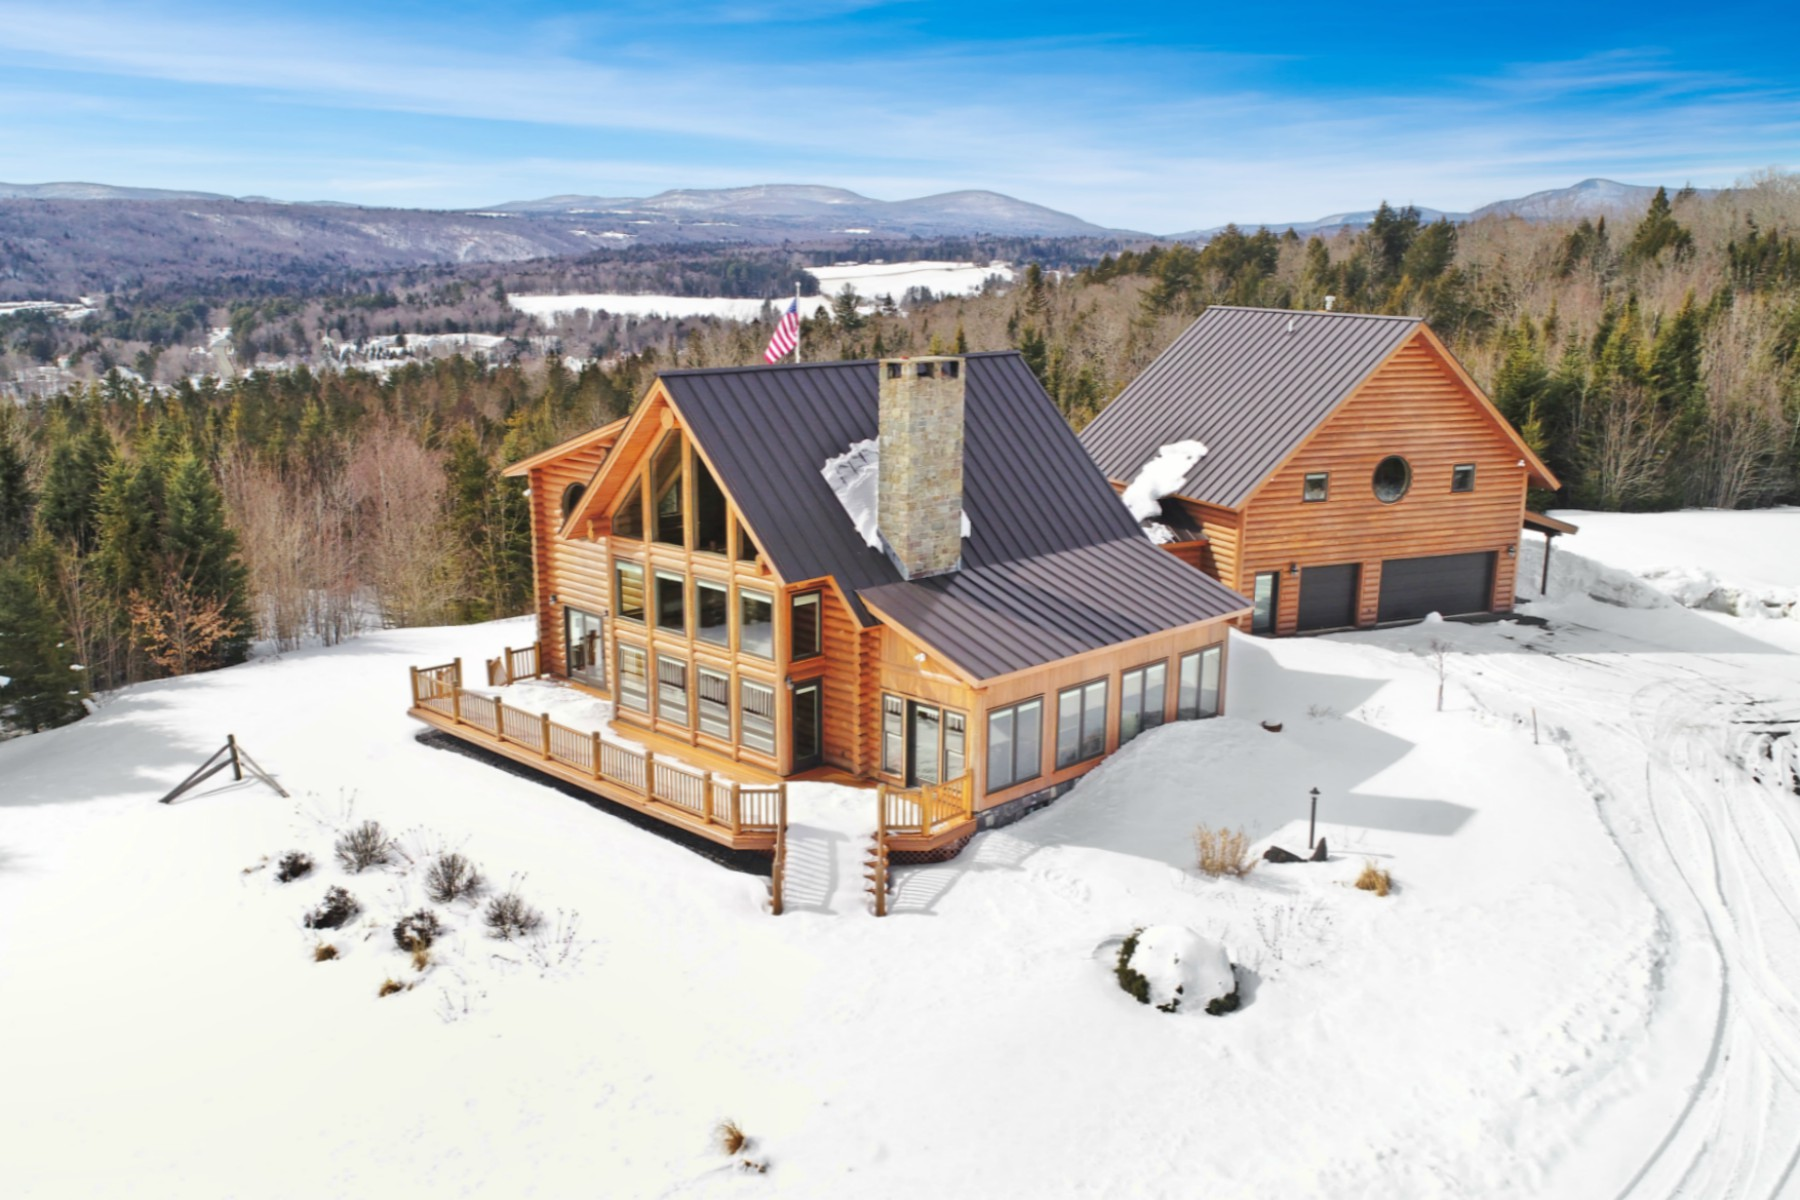 Single Family Home for Sale at 4136 Burke Hollow Road, Burke 4136 Burke Hollow Rd Burke, Vermont 05871 United States